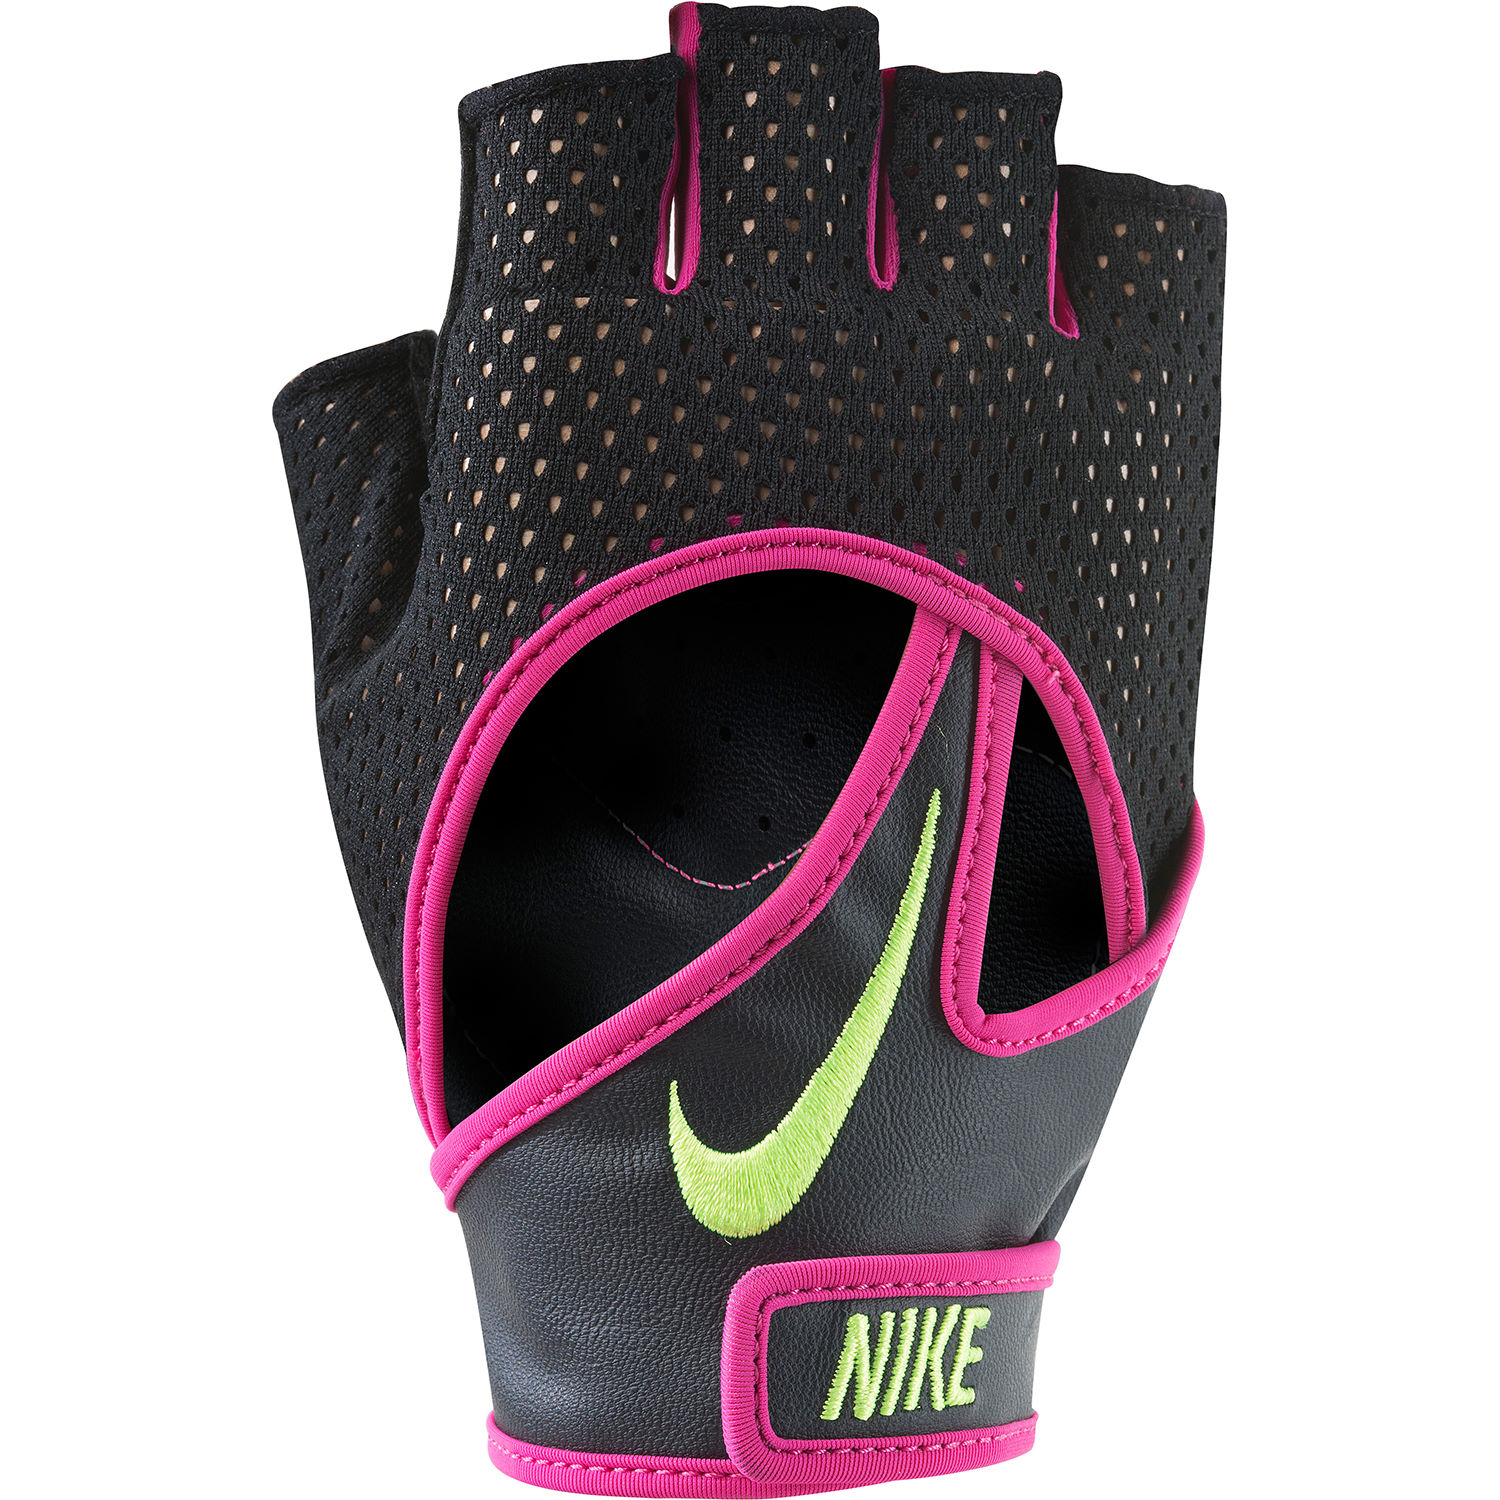 Workout Gloves Womens Nike: Nike Pro Elevate Training Gloves 2.0 Women's